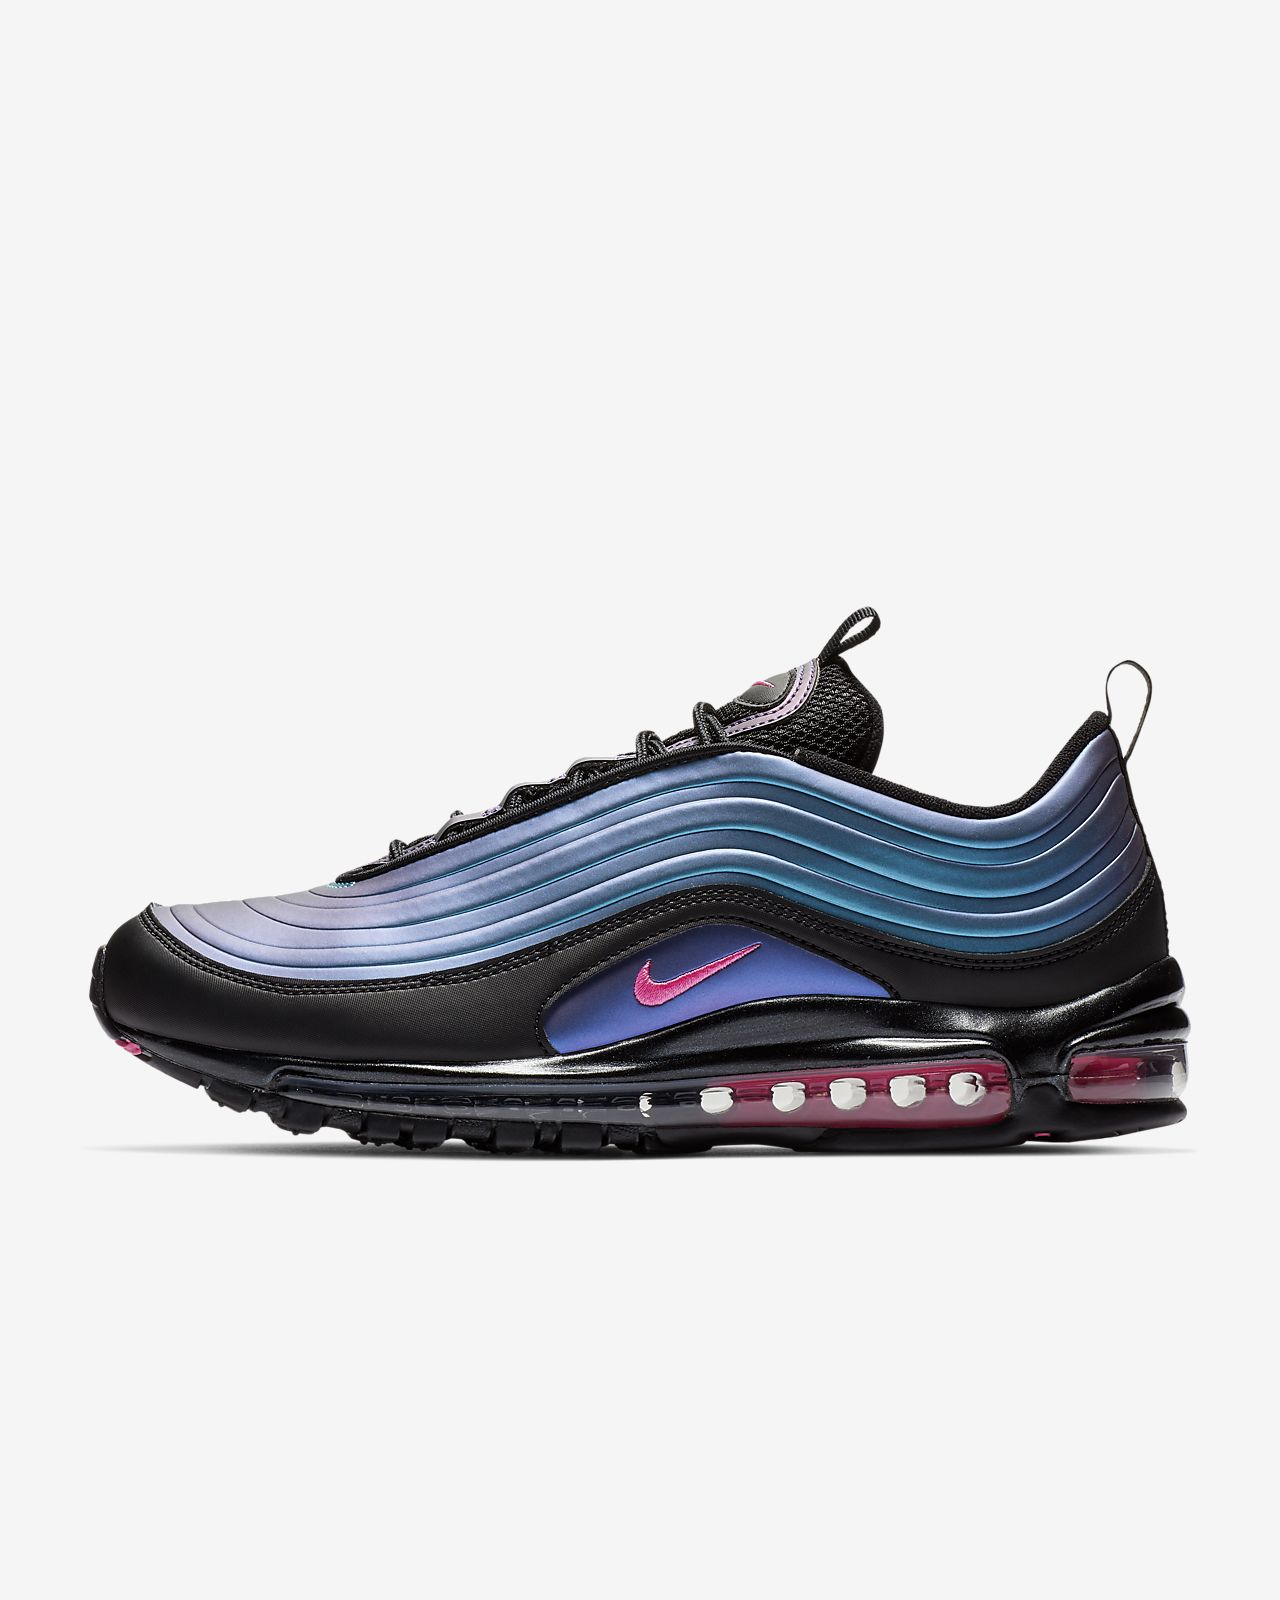 Nike Air Max 97 LX Herenschoen